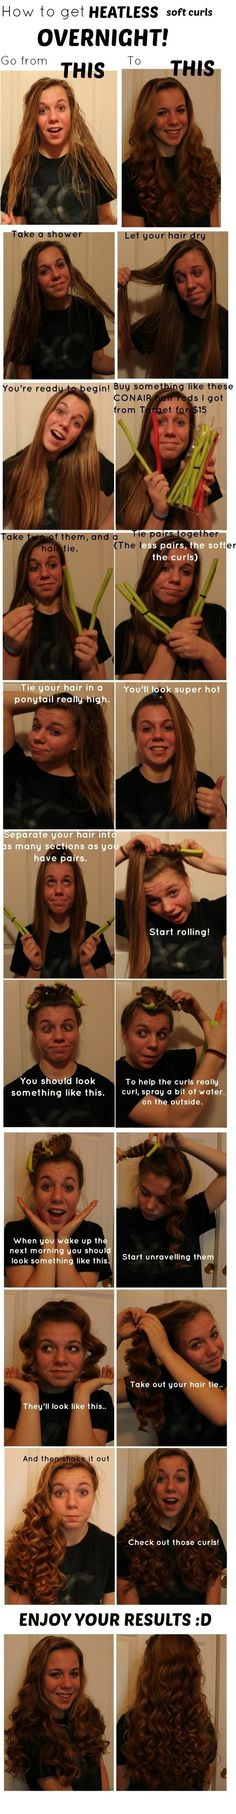 I'v done this before but never paired the rods or made a ponytail... must try... cos' with a pony it must be a lot easier to sleep when those things are on top of you'r head instead of allover...